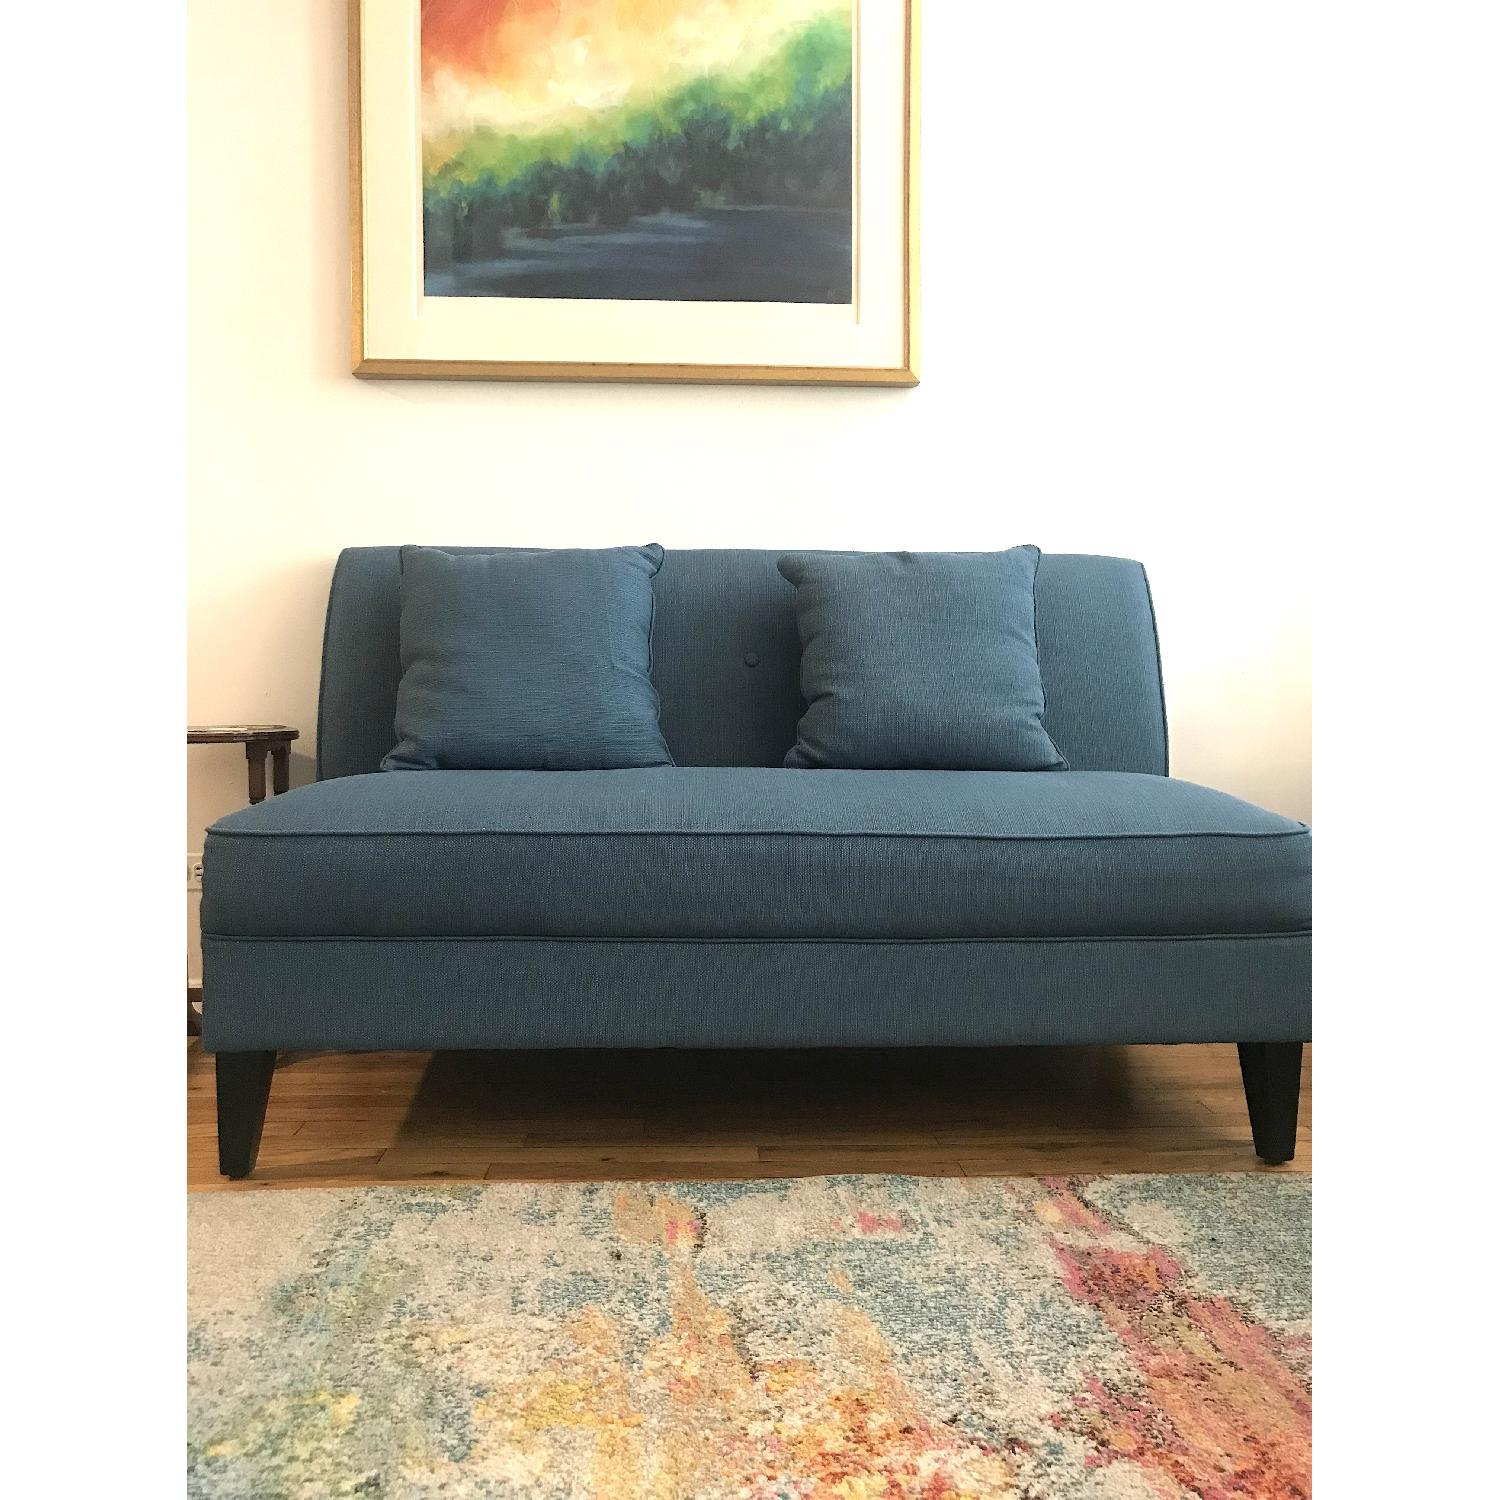 Mercury Row Loveseat in Caribbean Linen - image-2